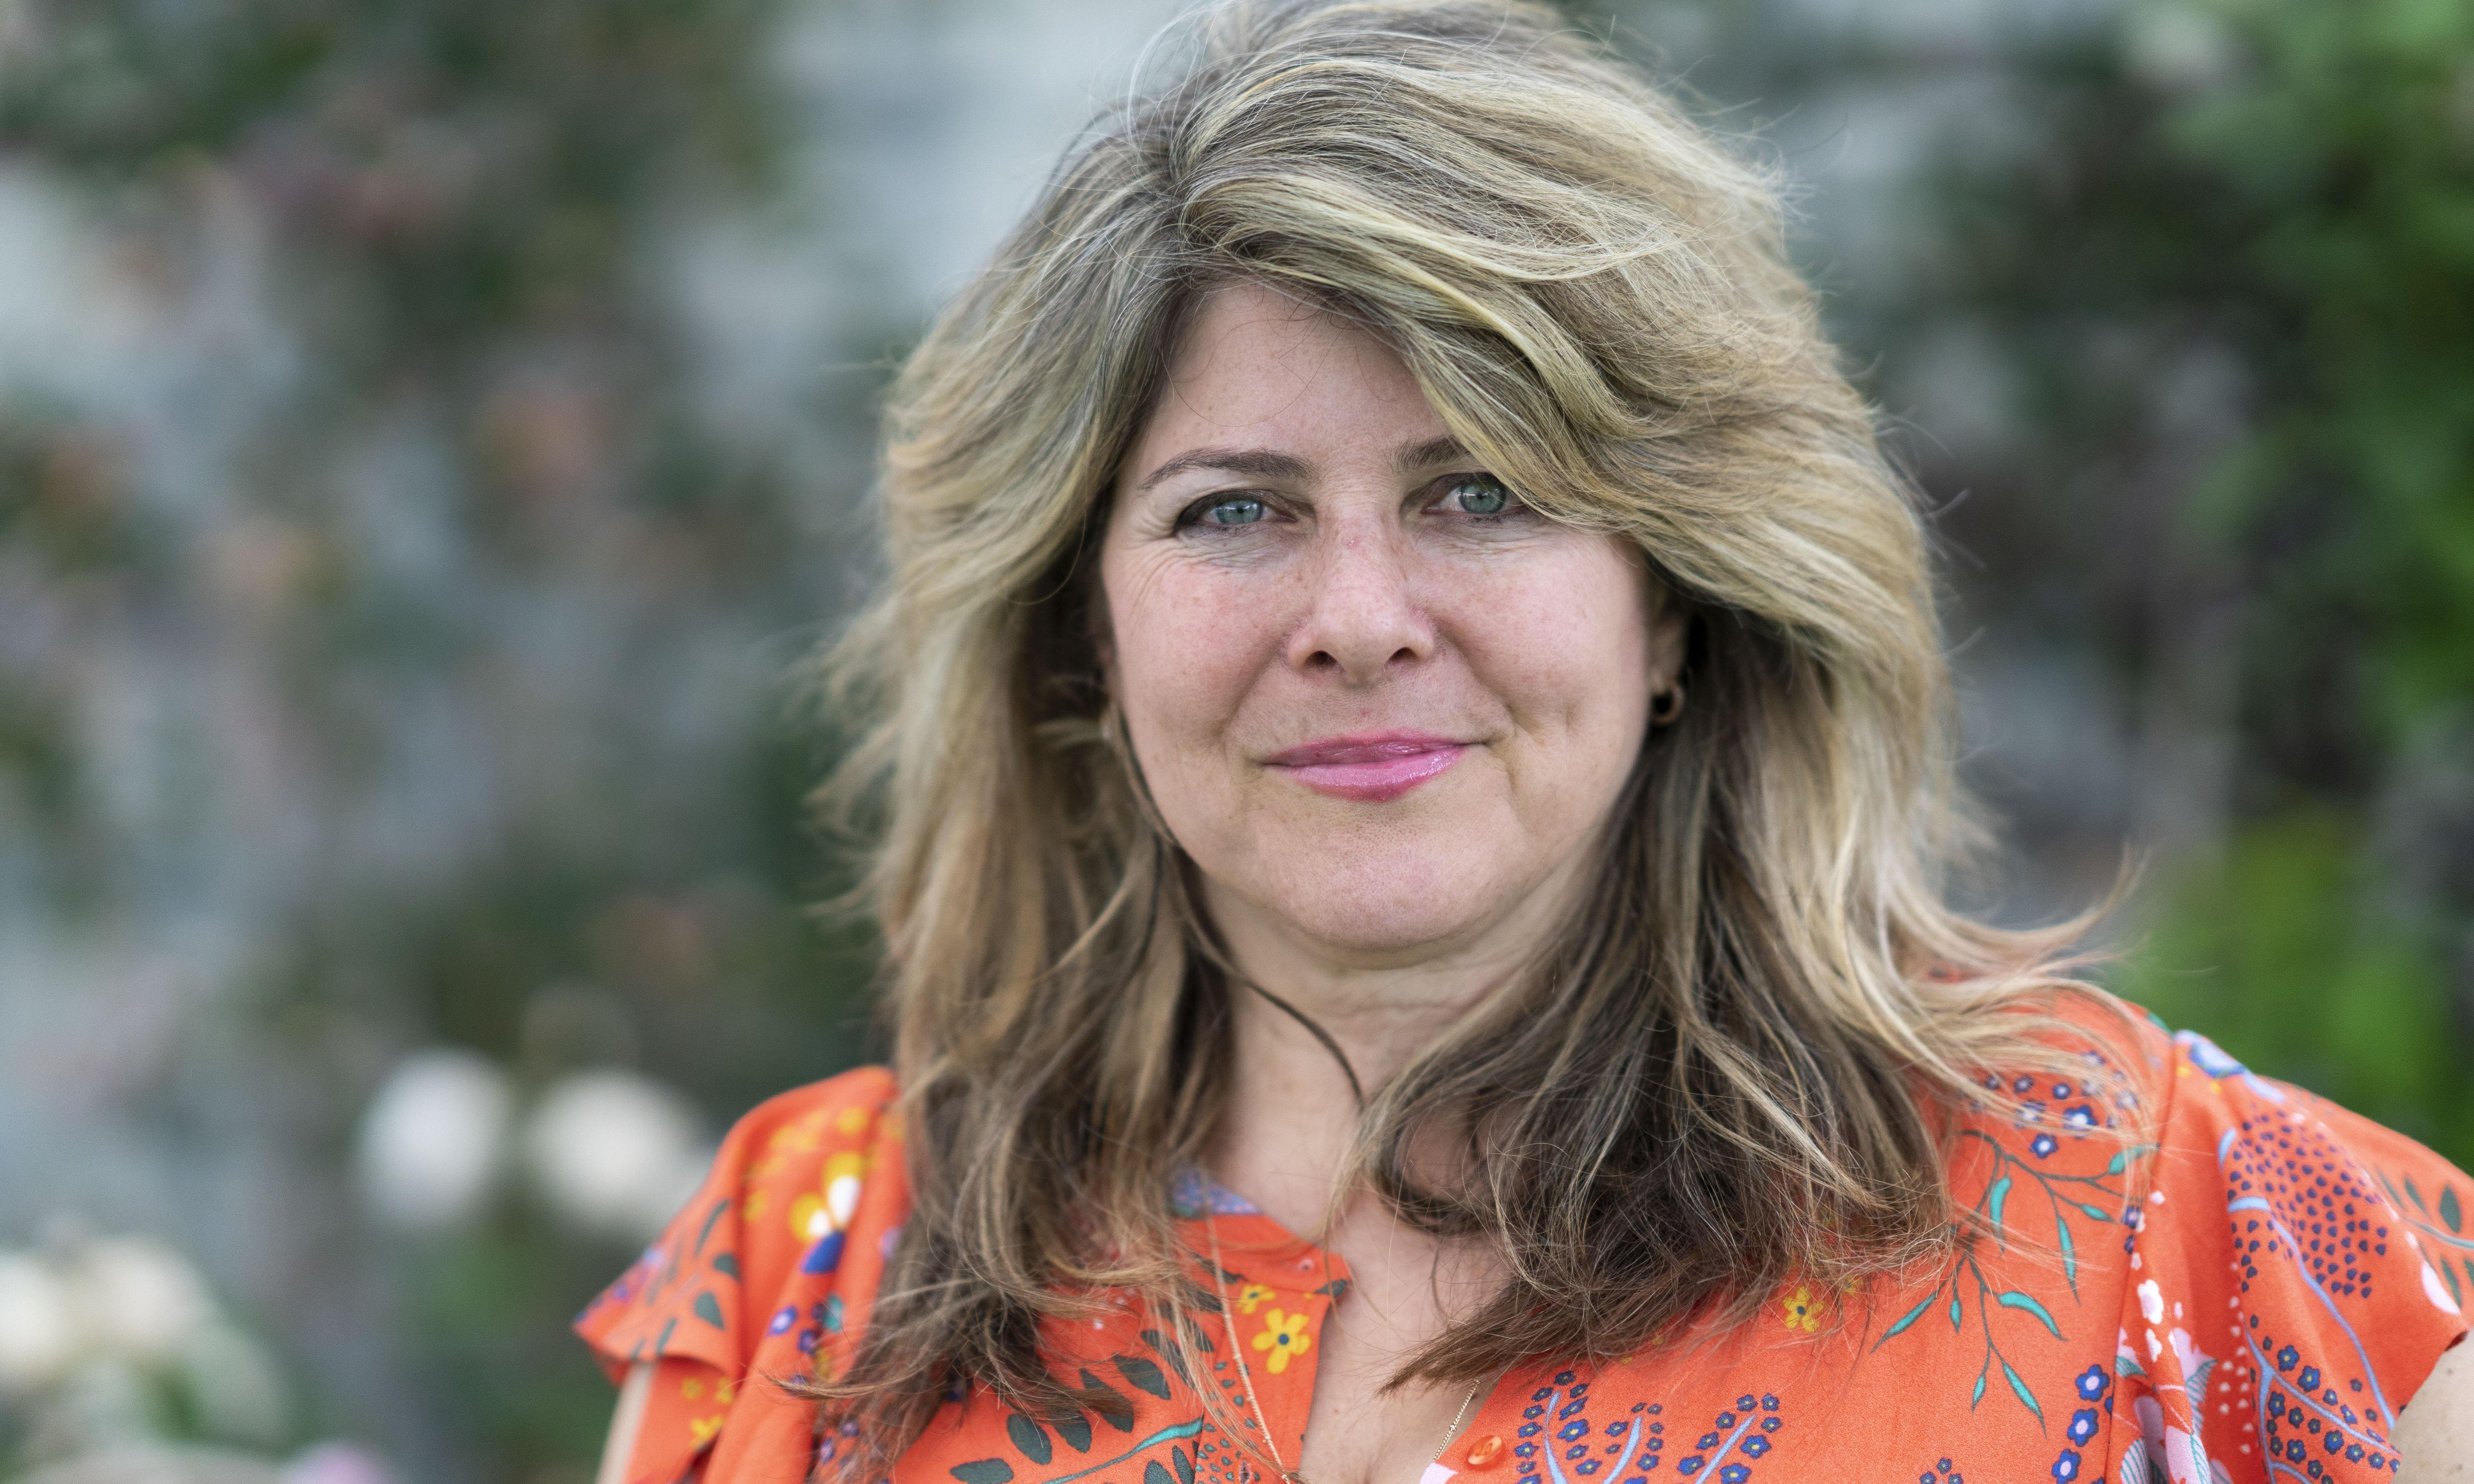 Naomi Wolf faces 'new questions' as US publisher postpones latest book